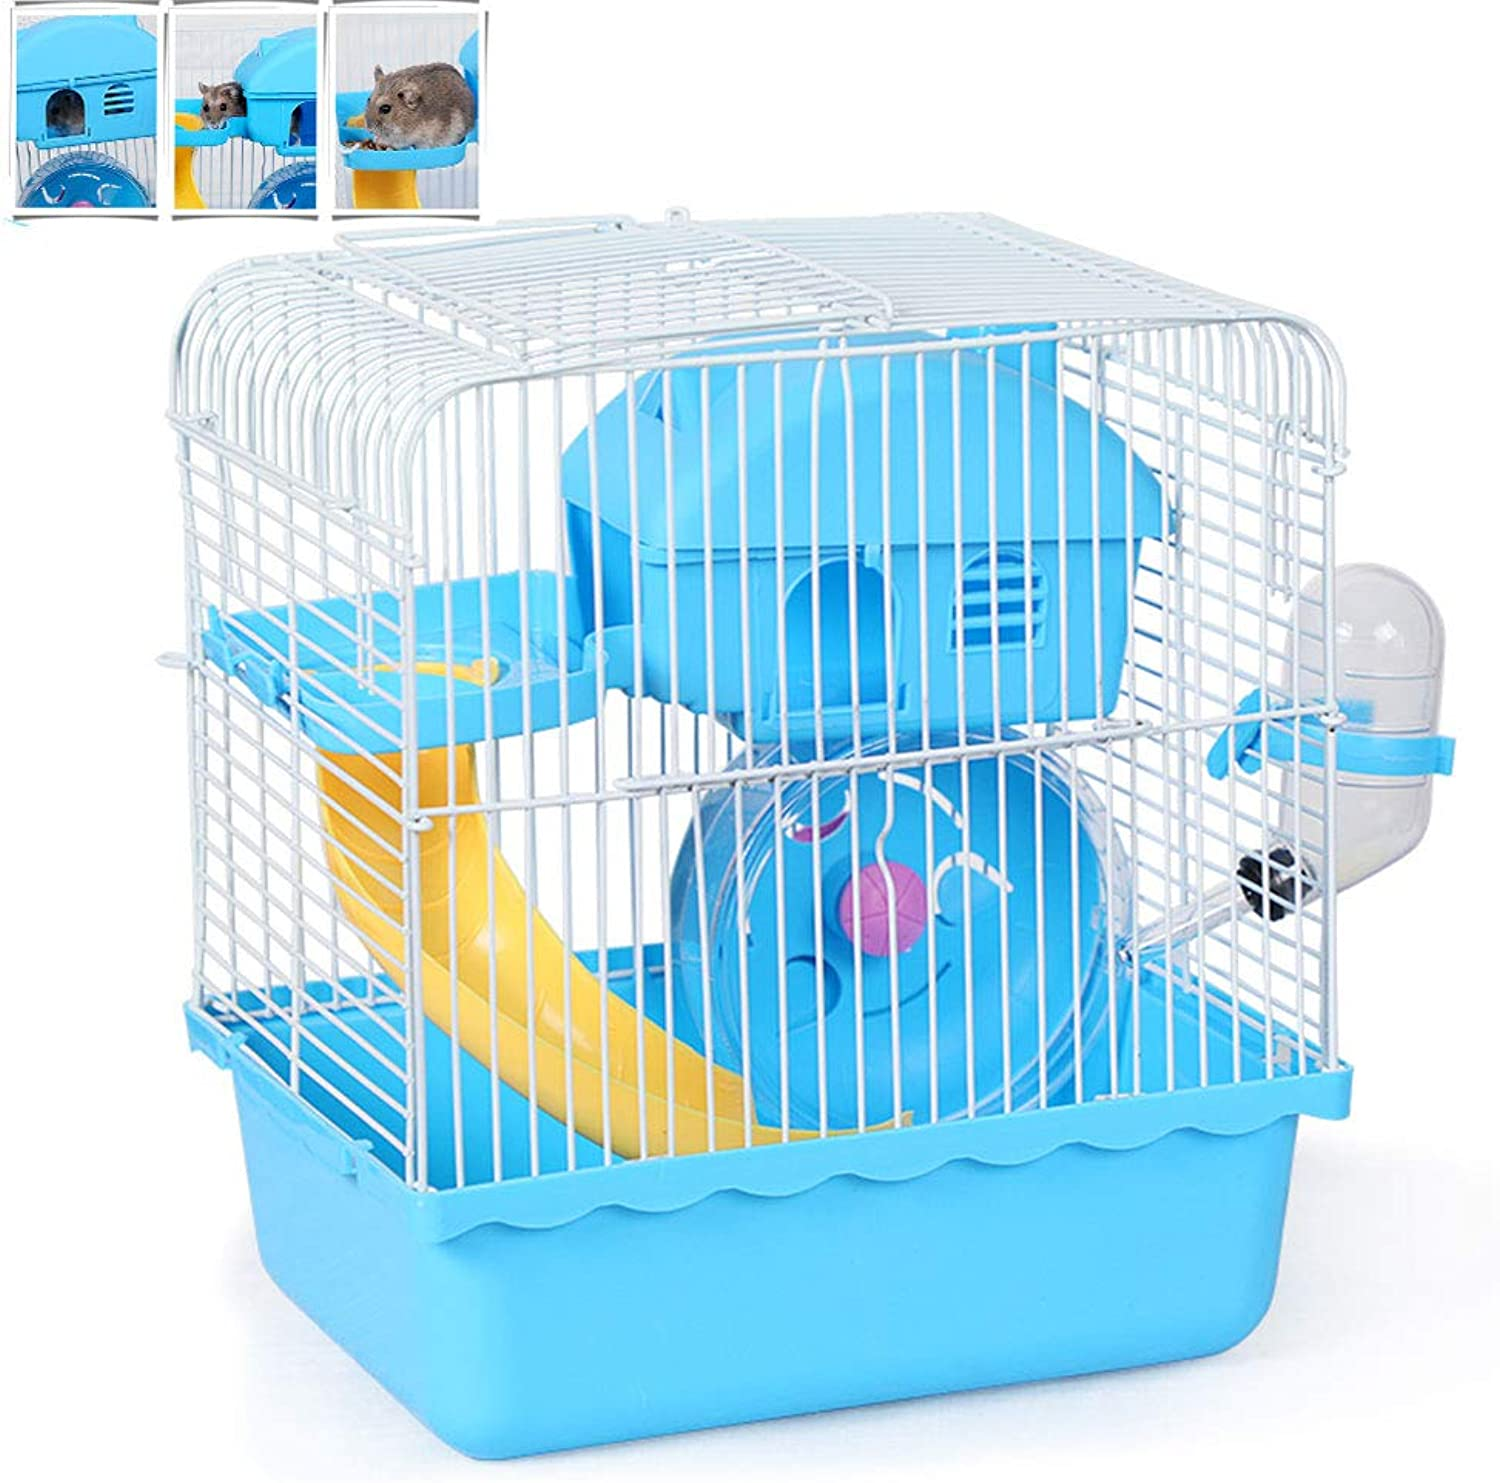 Hamster Cages Small Animal Houses and Habitats Second Floor Mouse House Feeding Station Suitable for Small Hamsters and Gerbils